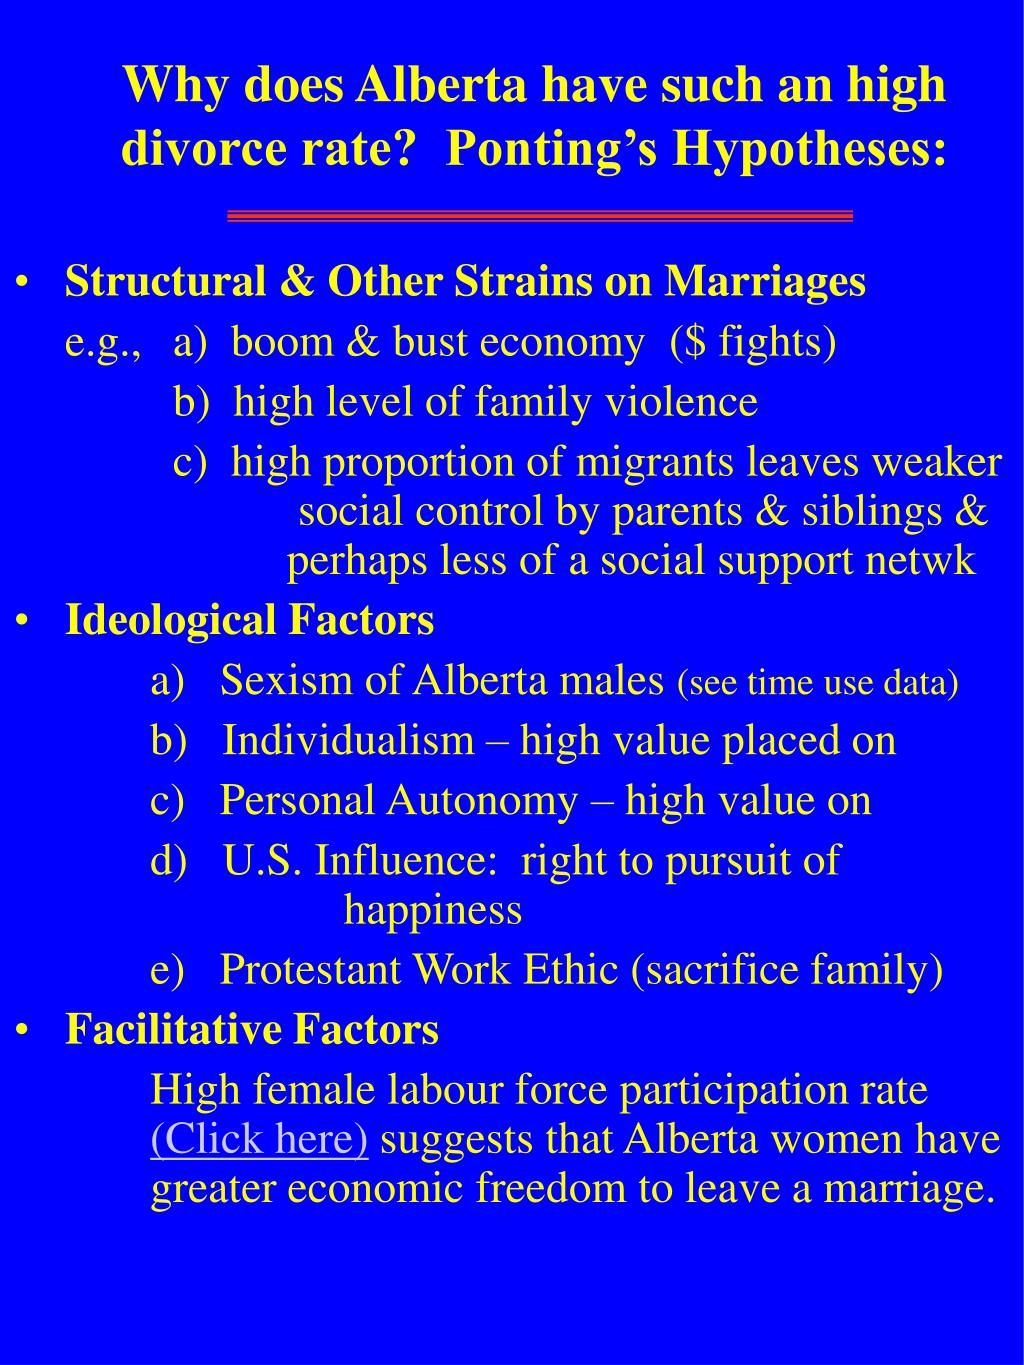 Why does Alberta have such an high divorce rate?  Ponting's Hypotheses: